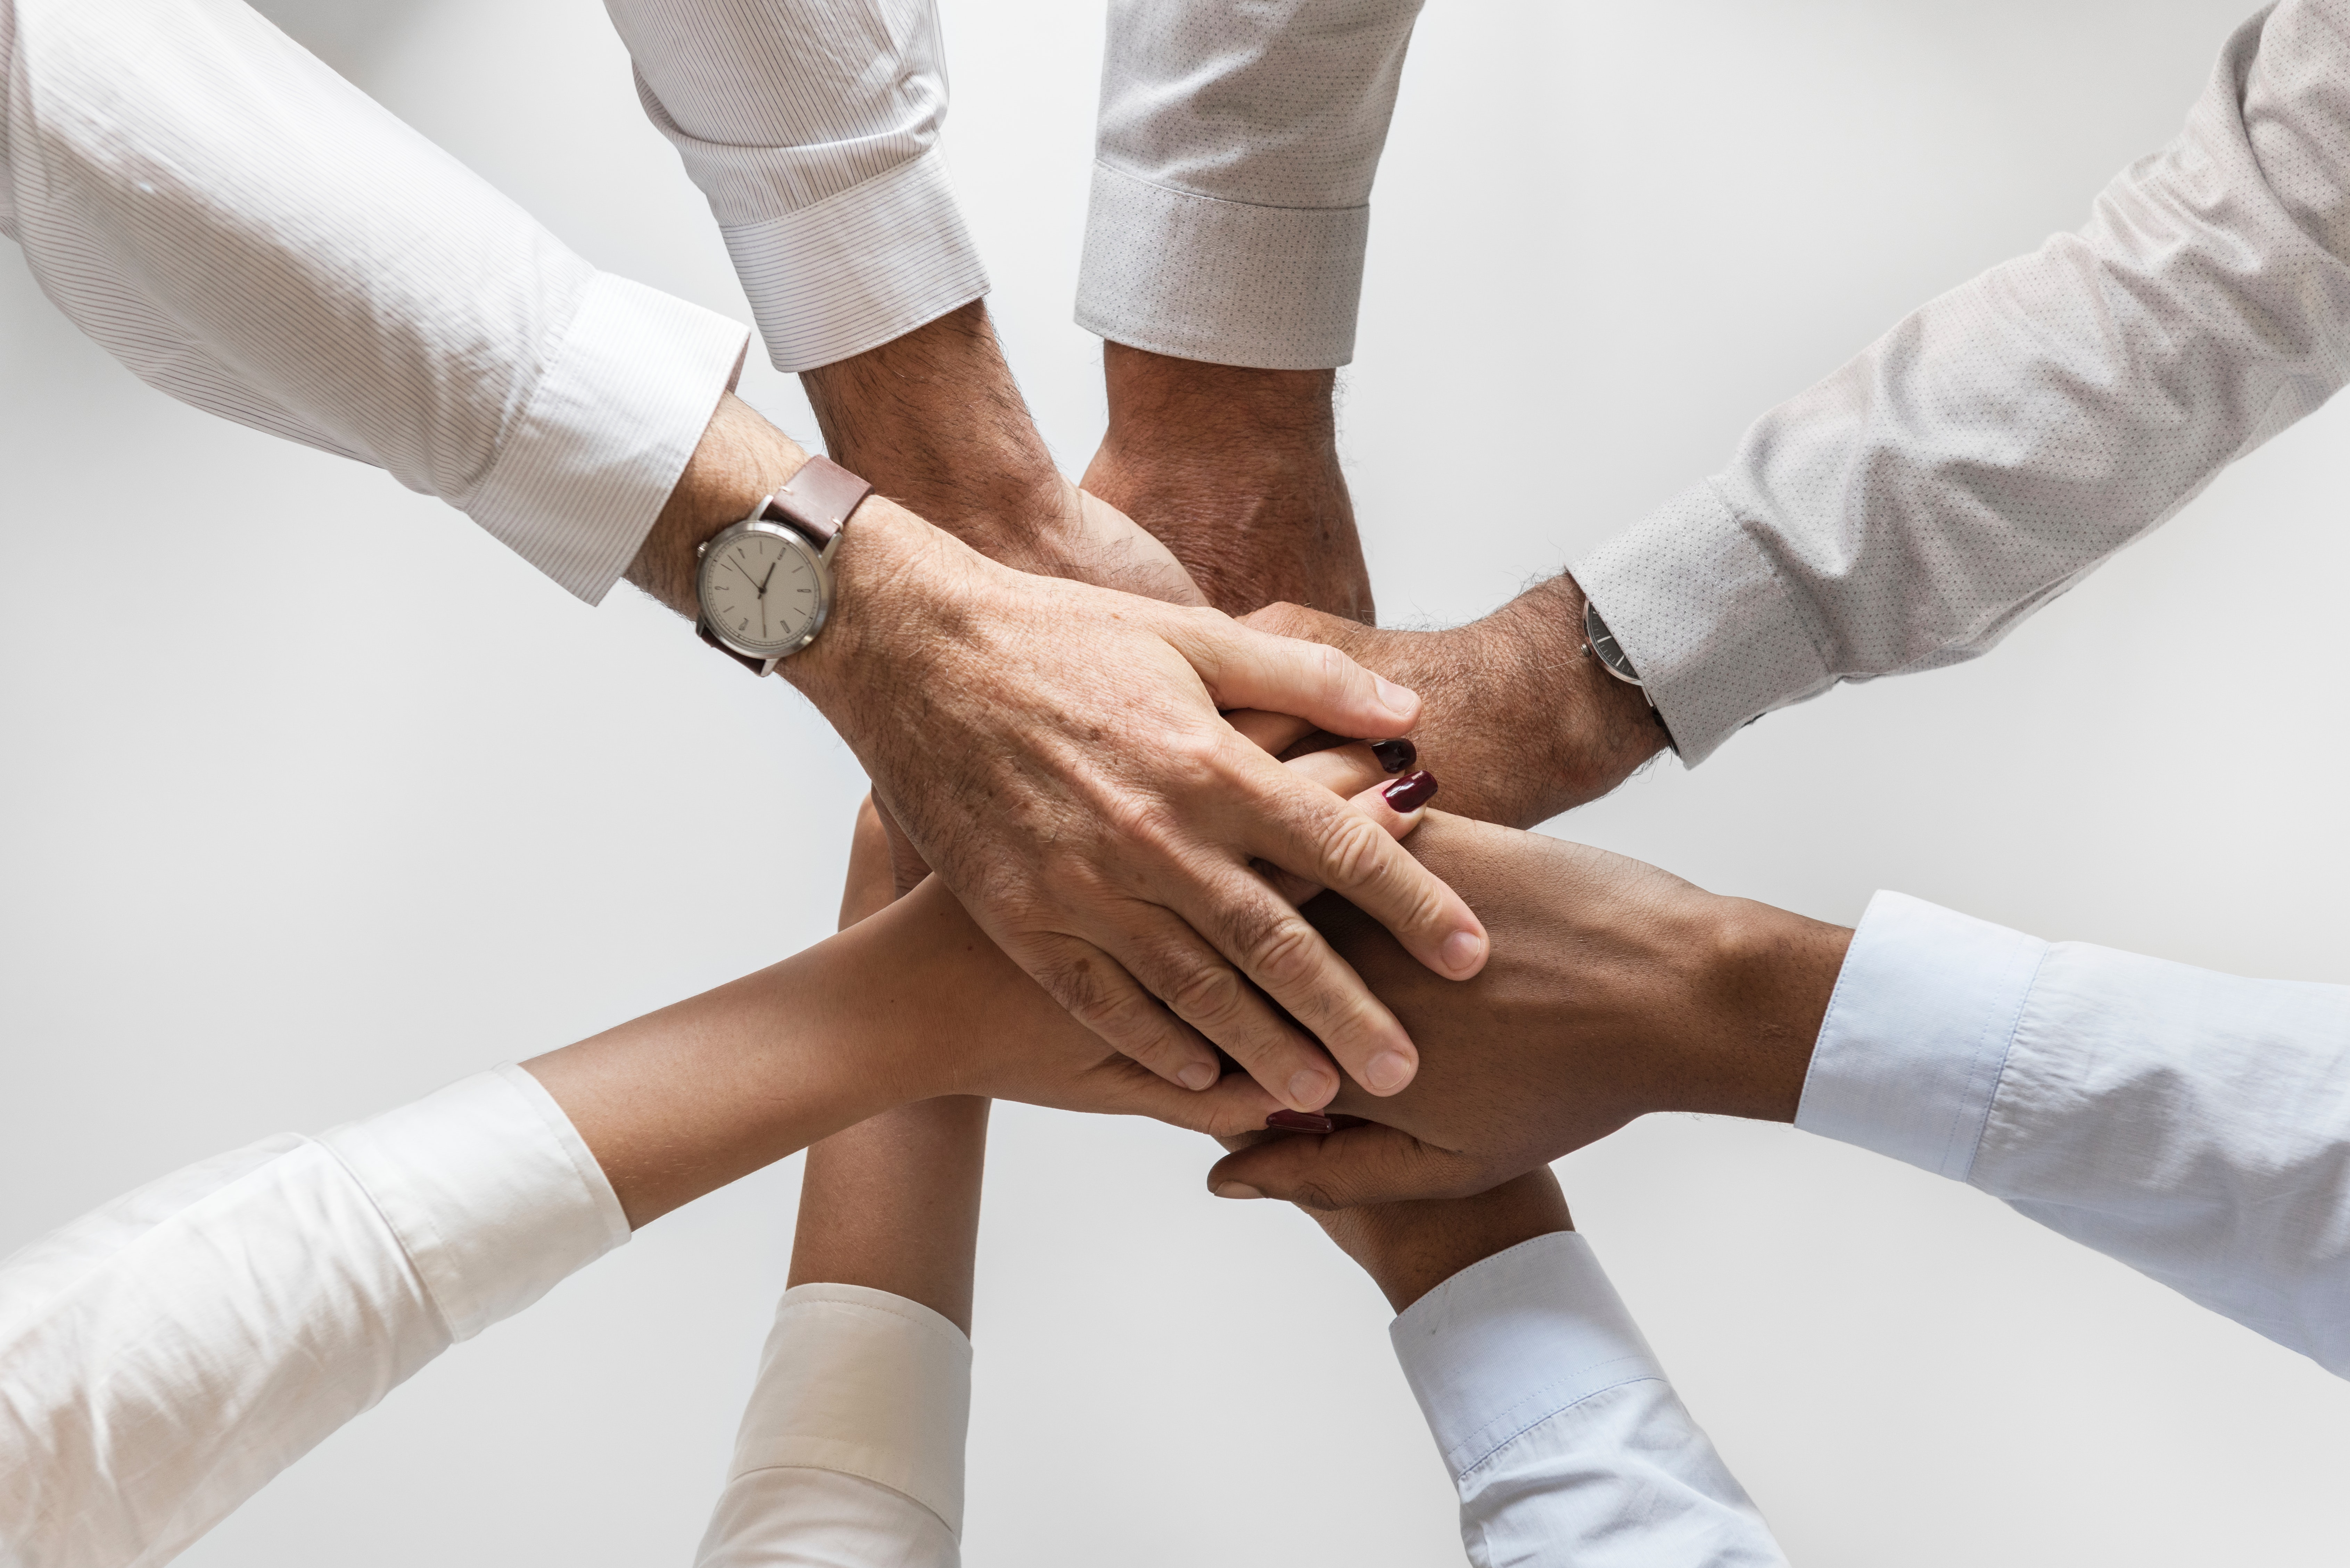 Hands showing support and collaboration